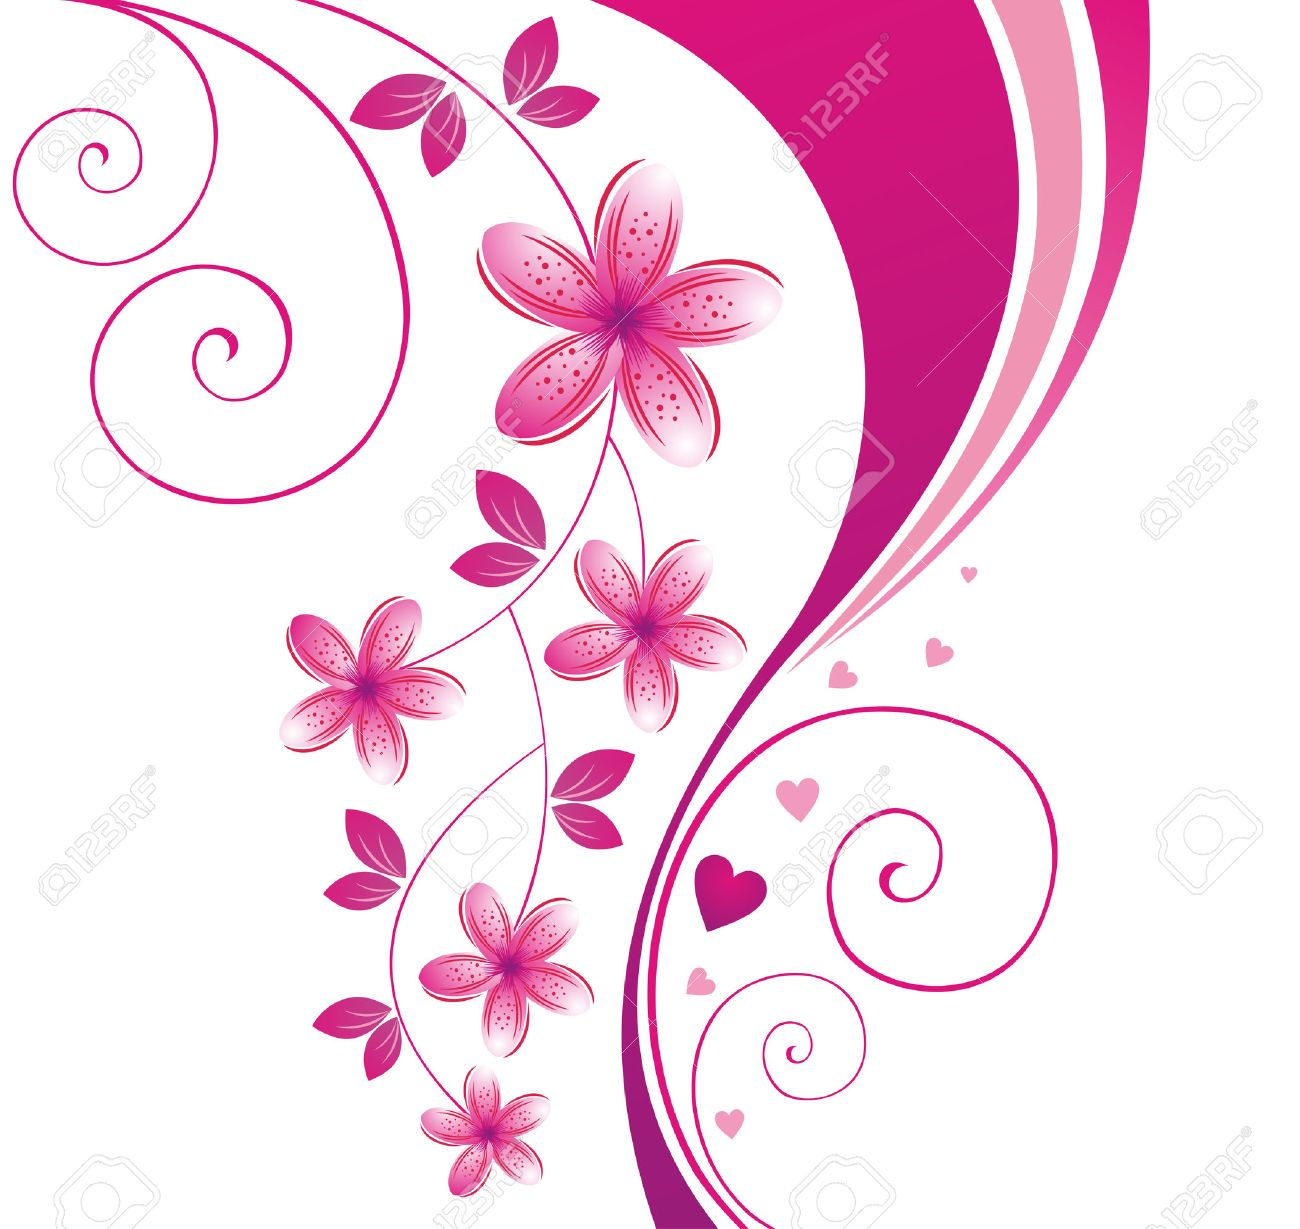 pink flower. floral background. royalty free cliparts, vectors